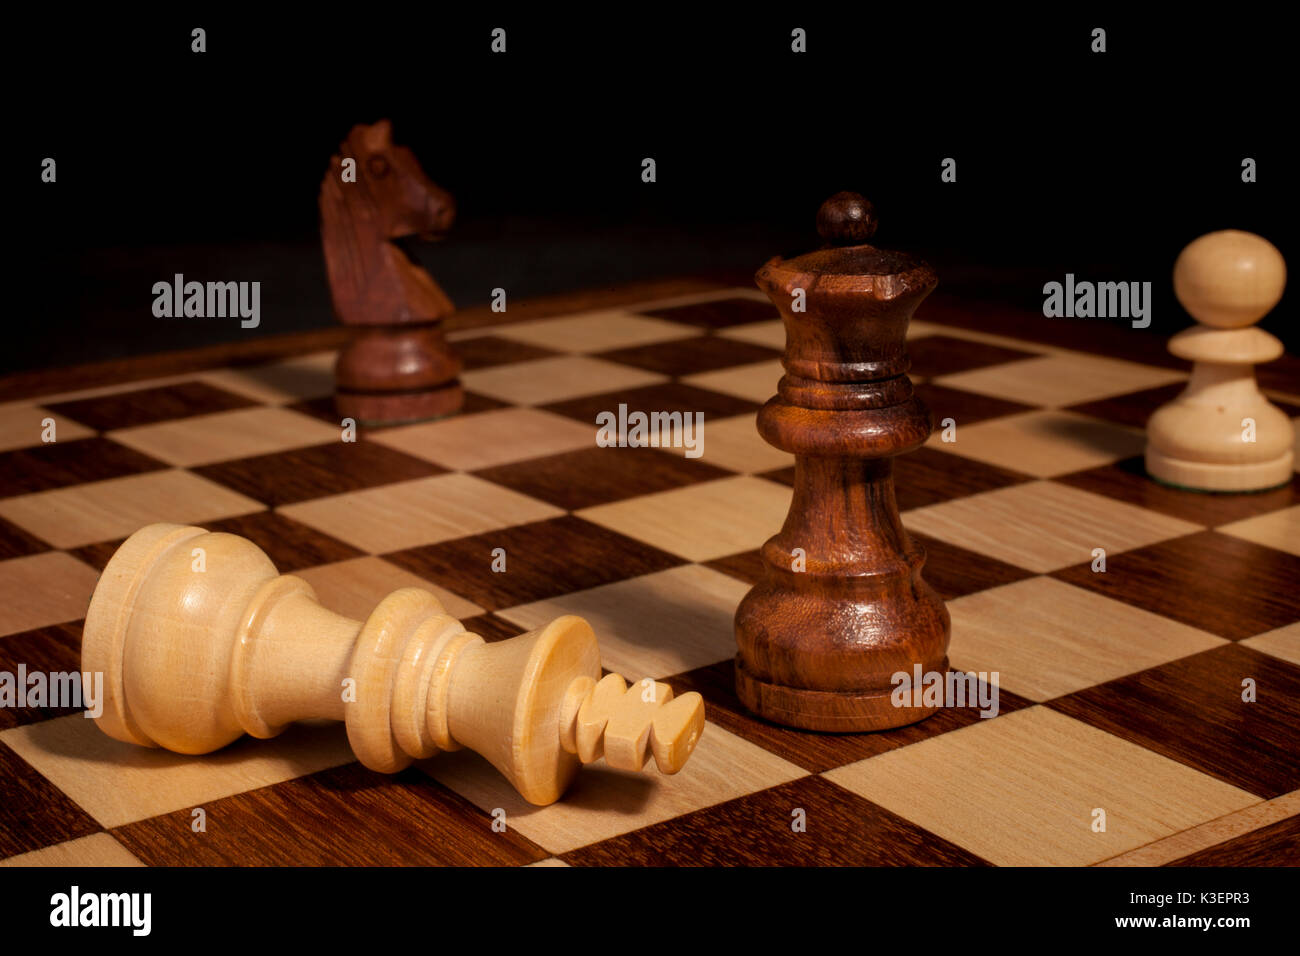 checkmate on chessboard - Stock Image